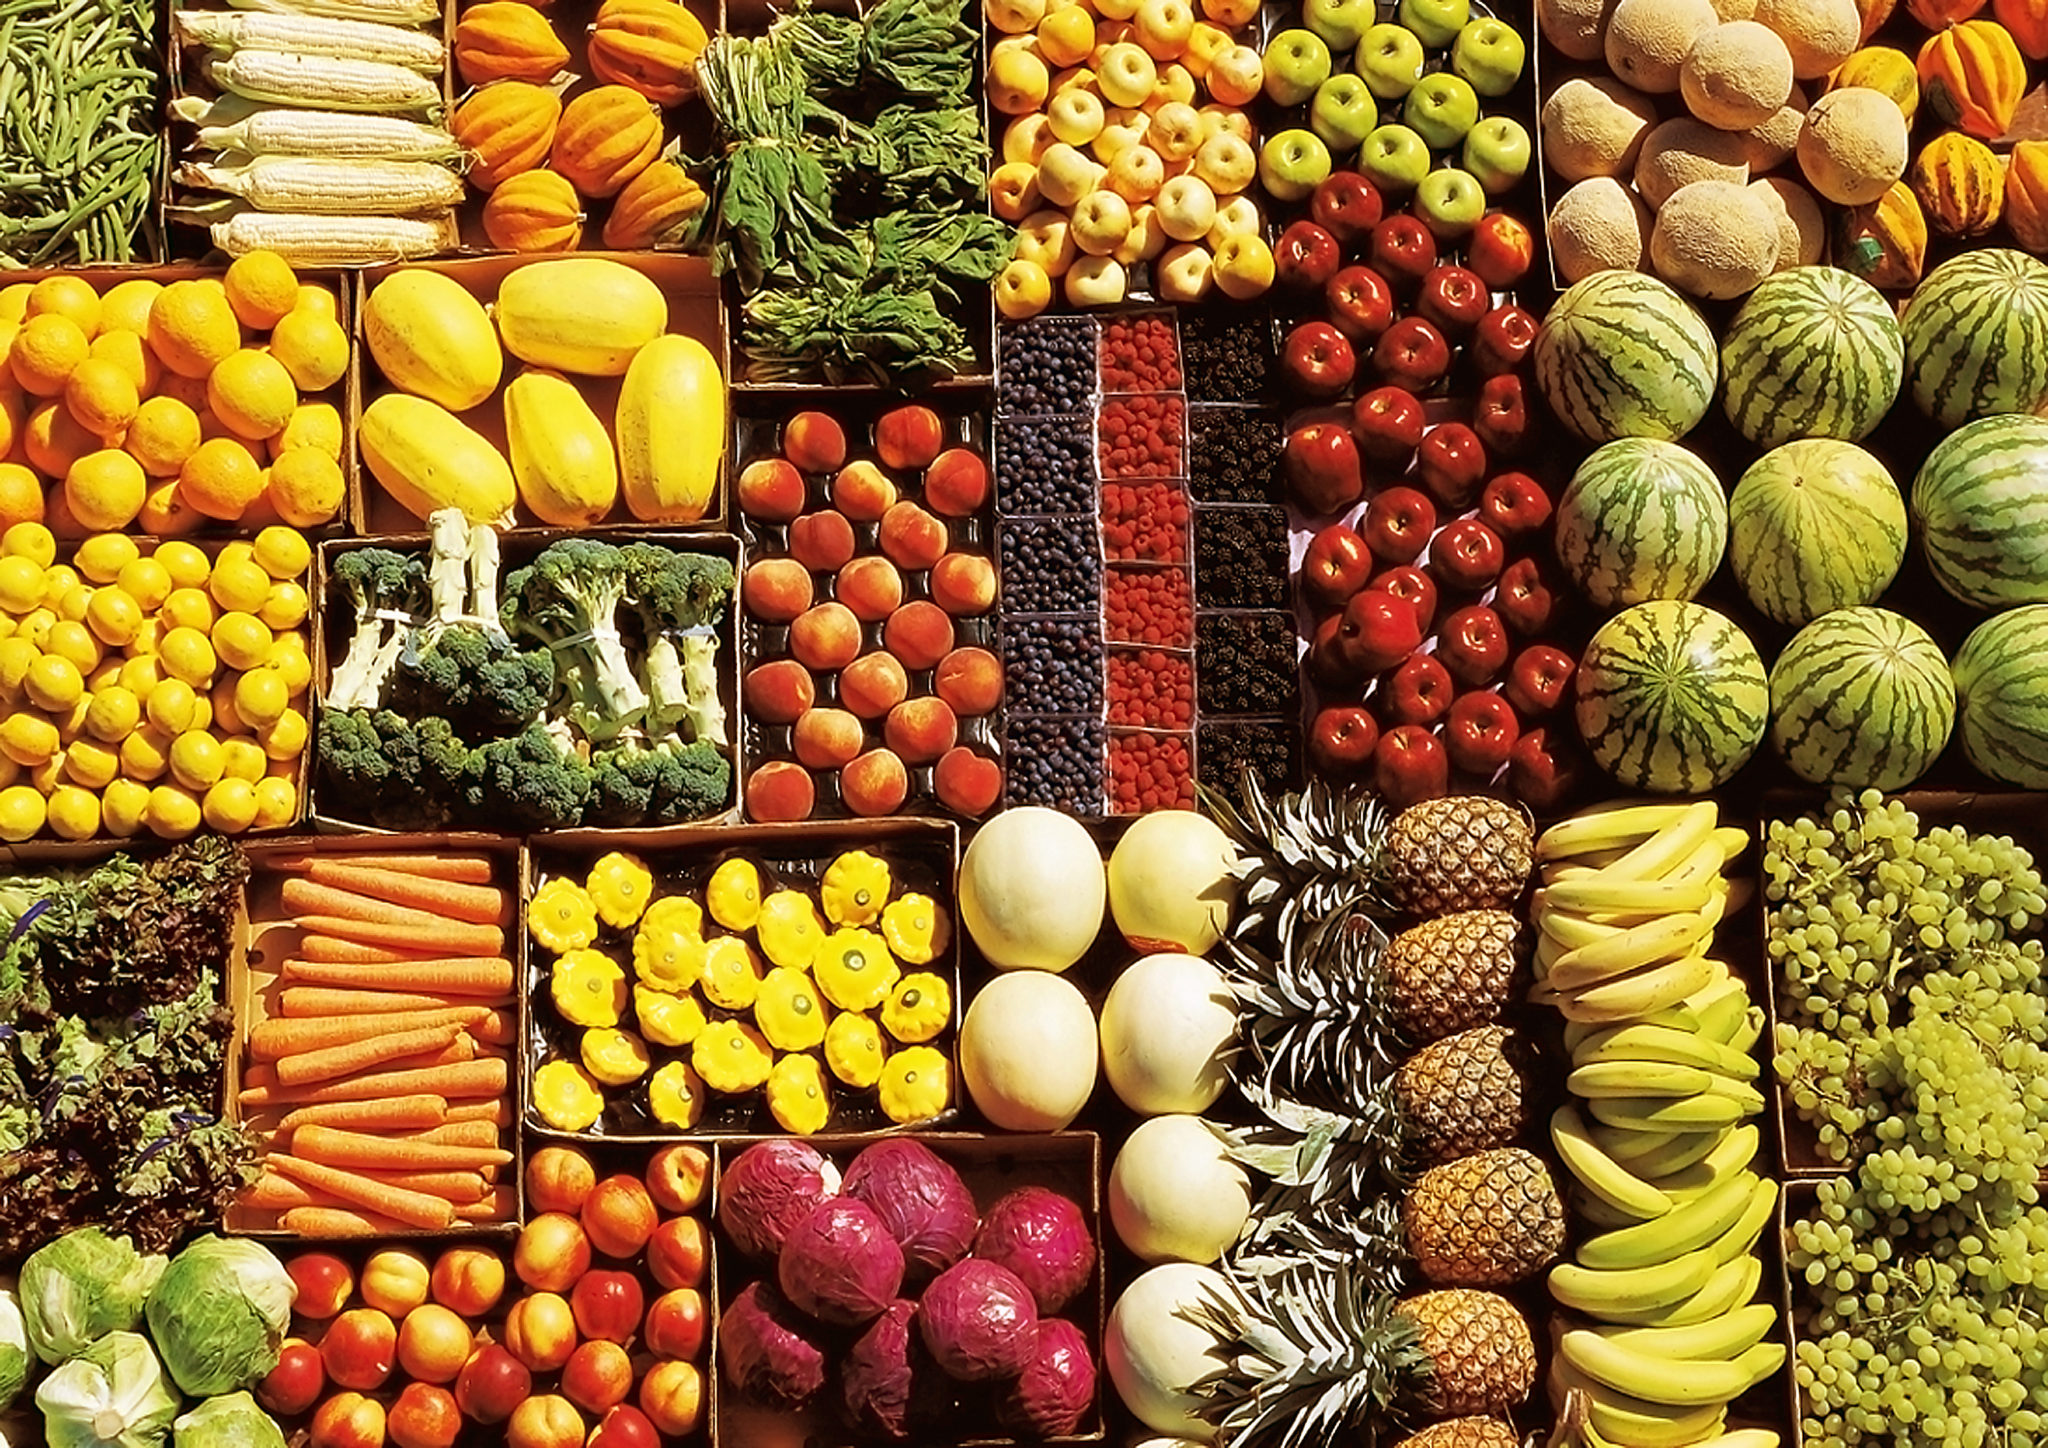 display of various fruit and vegetables